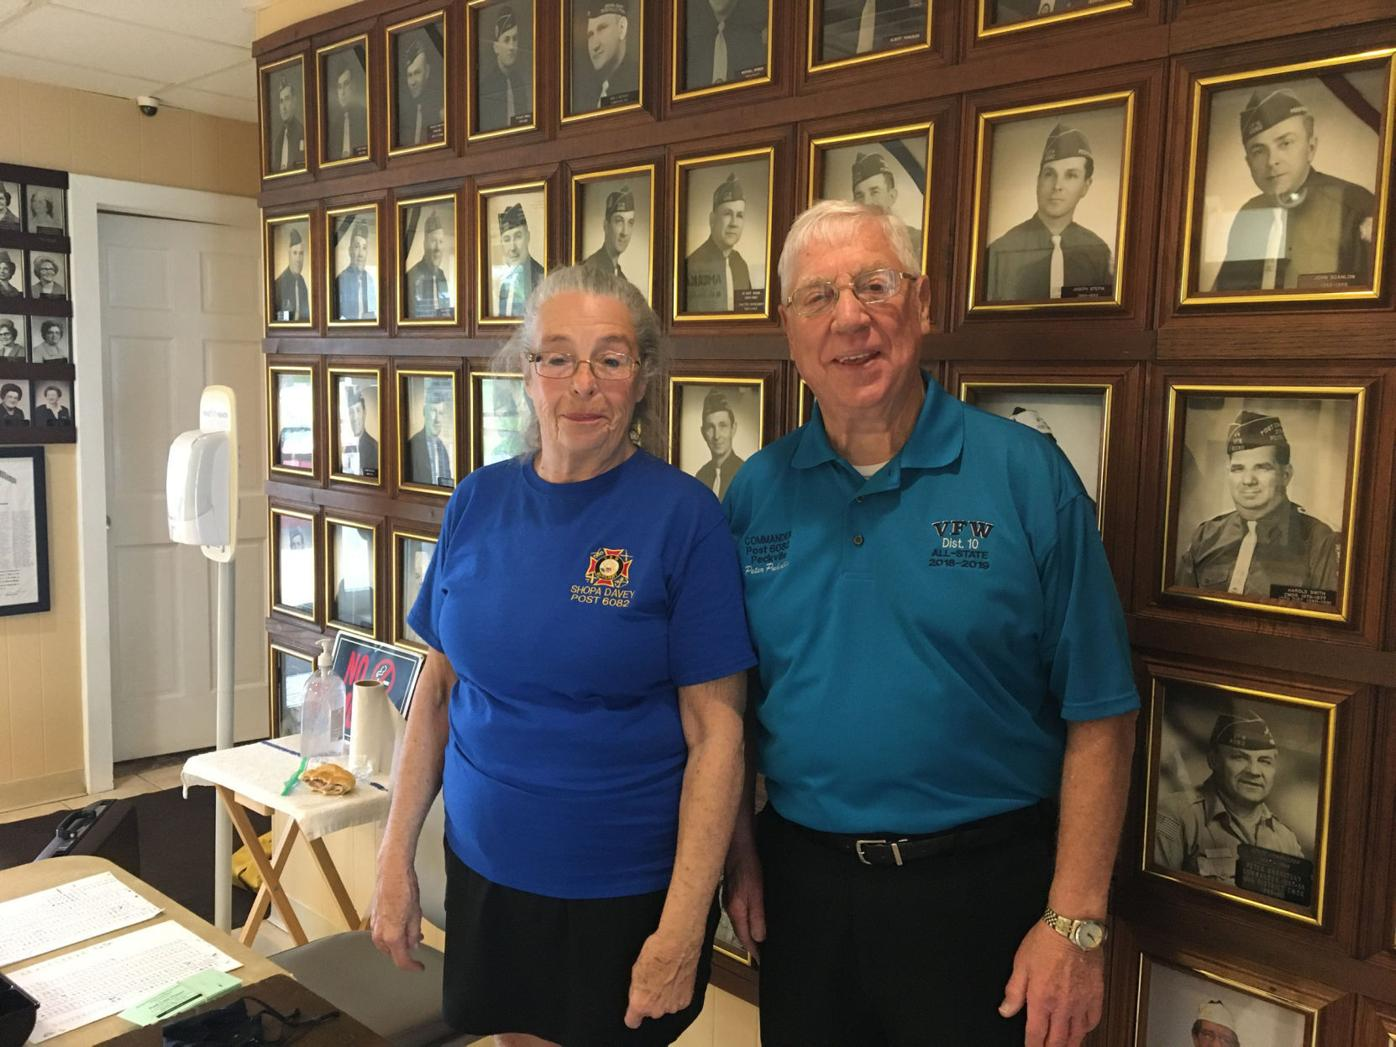 At the VFW Post 6082, Linda Gibney, Trustee of the Auxiliary and VFW Poat Commander Peter Puhulla collect tickets in the lobby